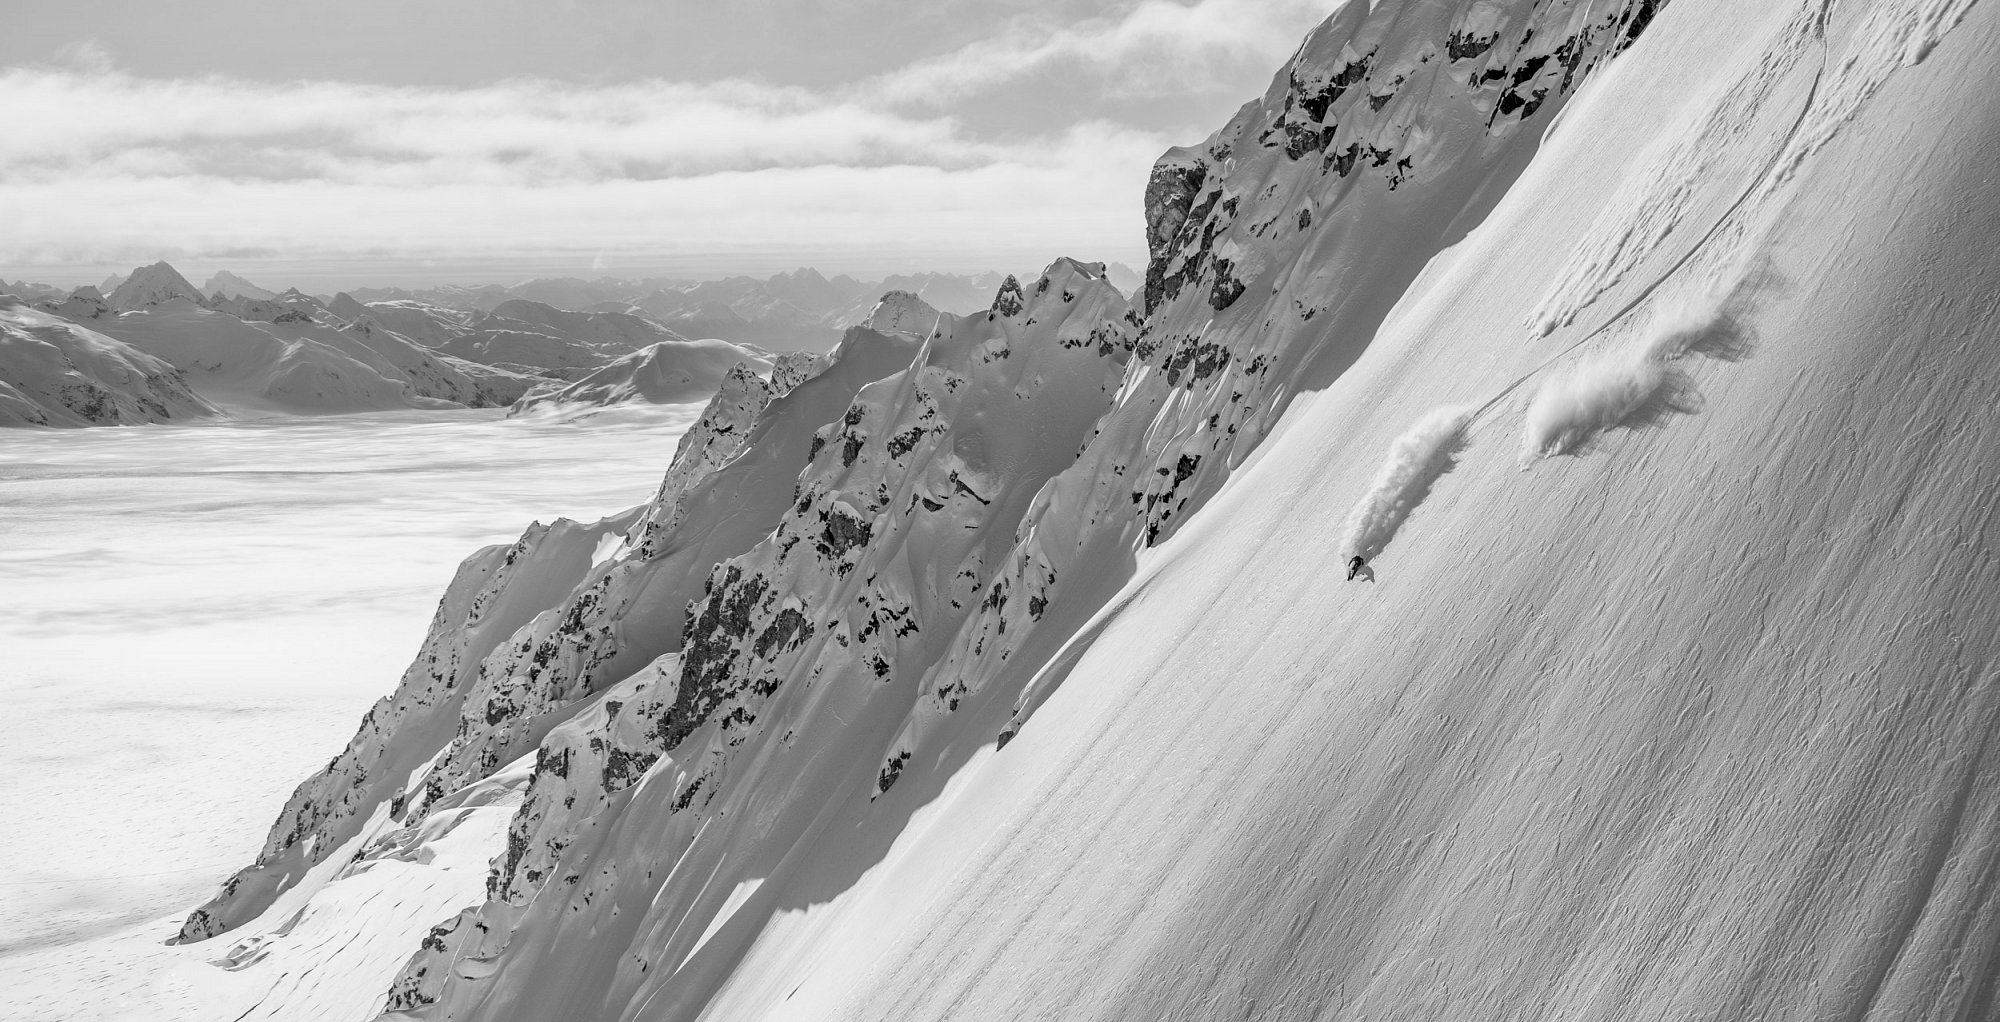 Working with Supervention II. Aksel Lund Svindal skiing in Alaska/Haines.